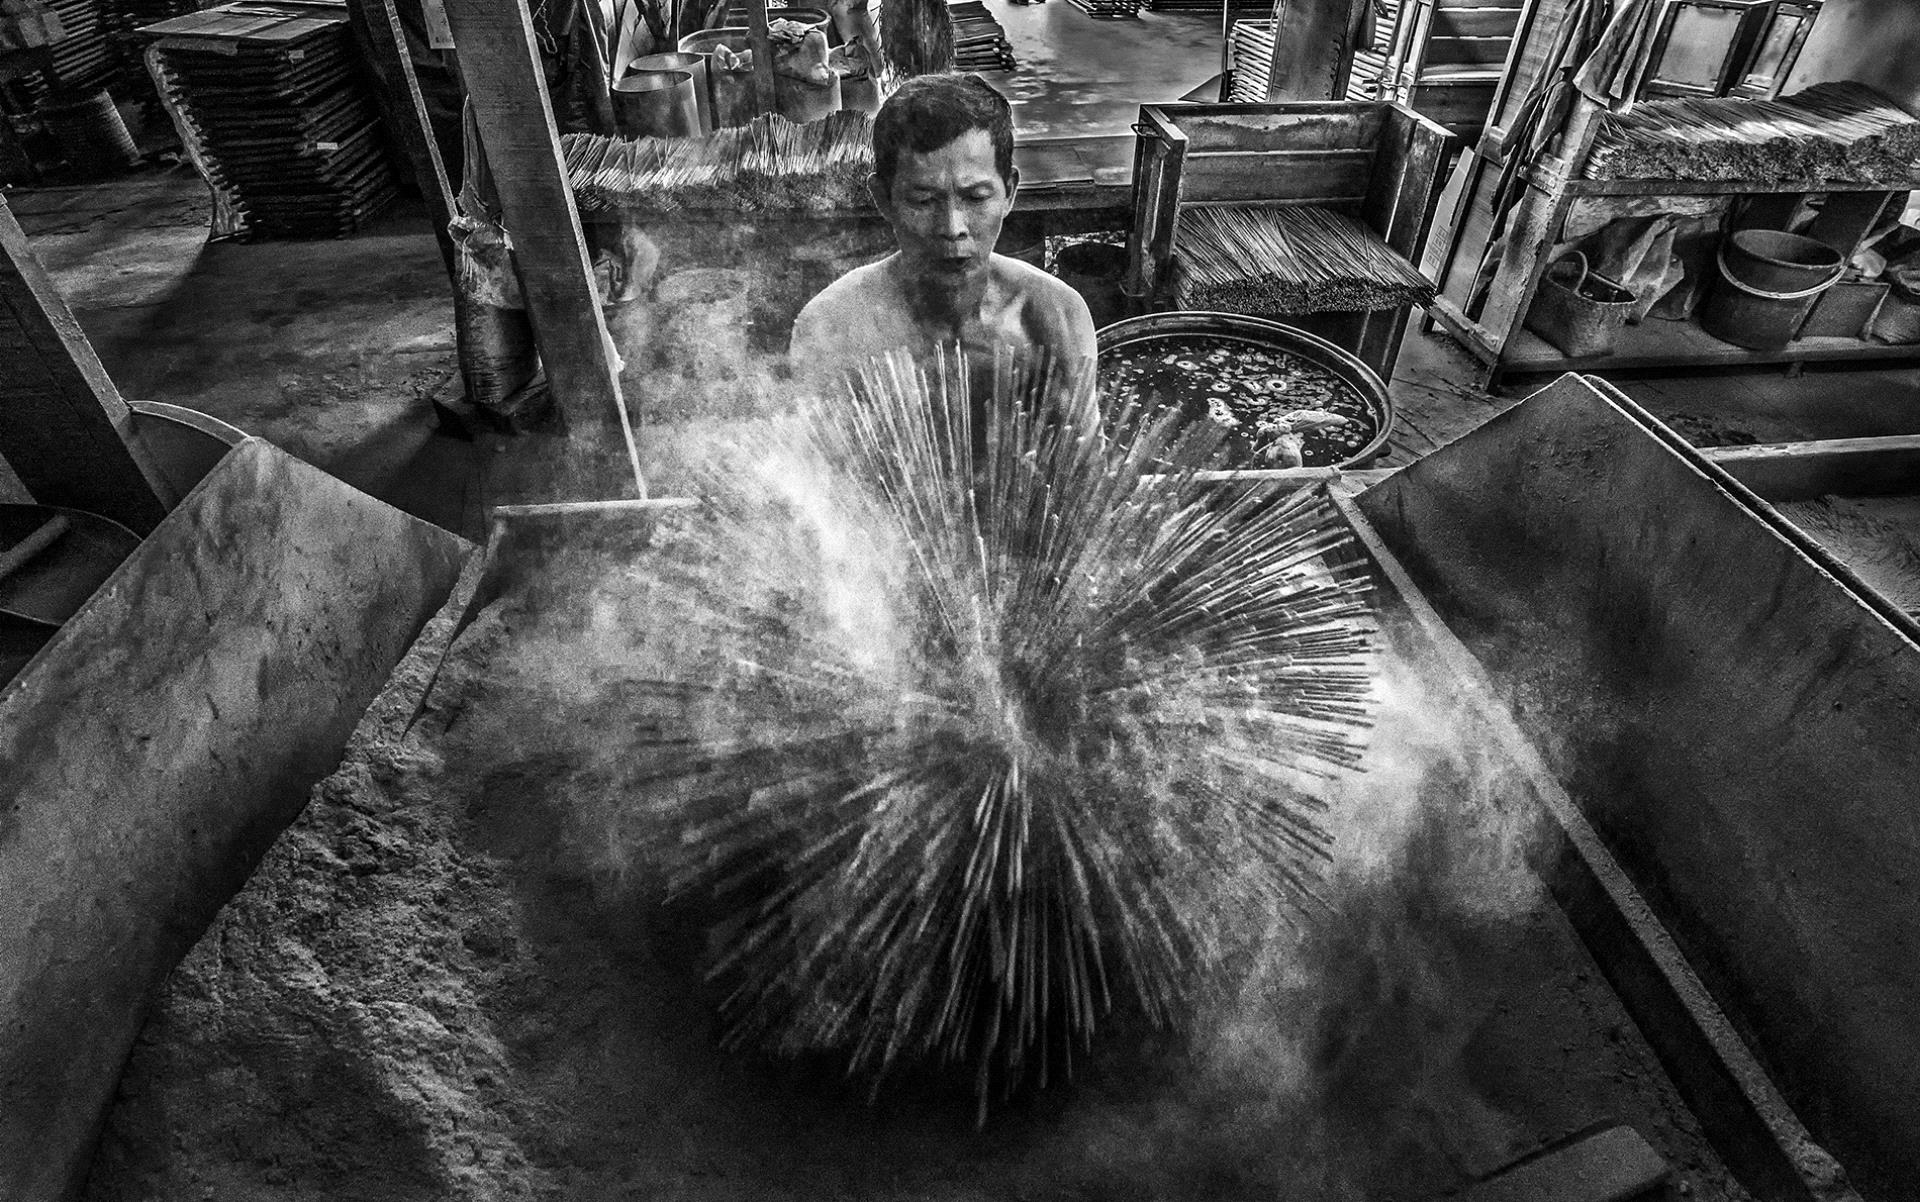 PhotoVivo Honor Mention - Lin Kuw Ming (Malaysia)  Joss Stick Maker